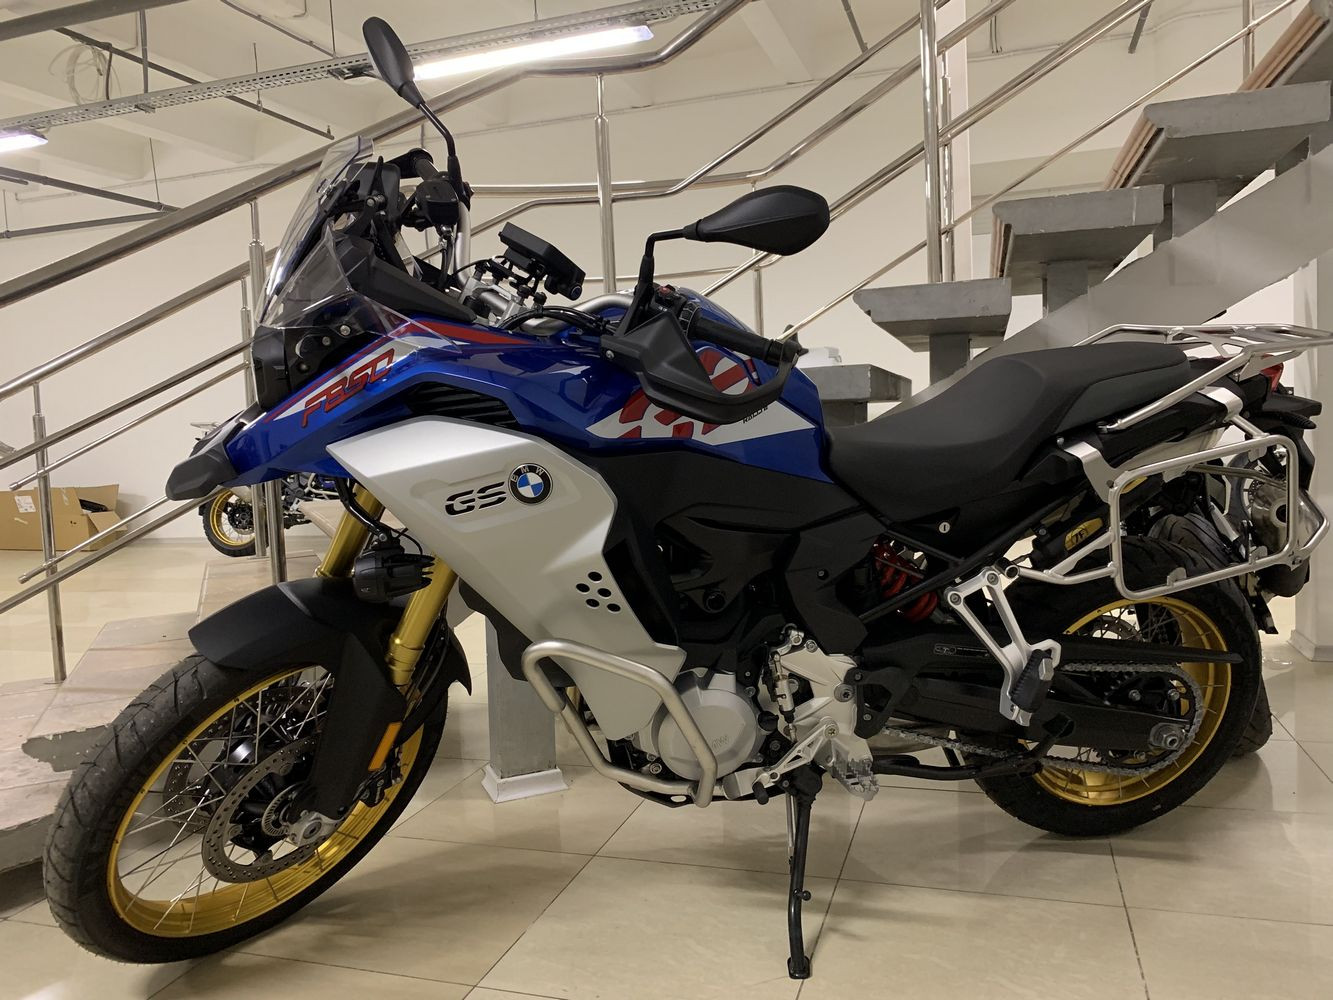 F 850 GS ADVENTURE RALLEY